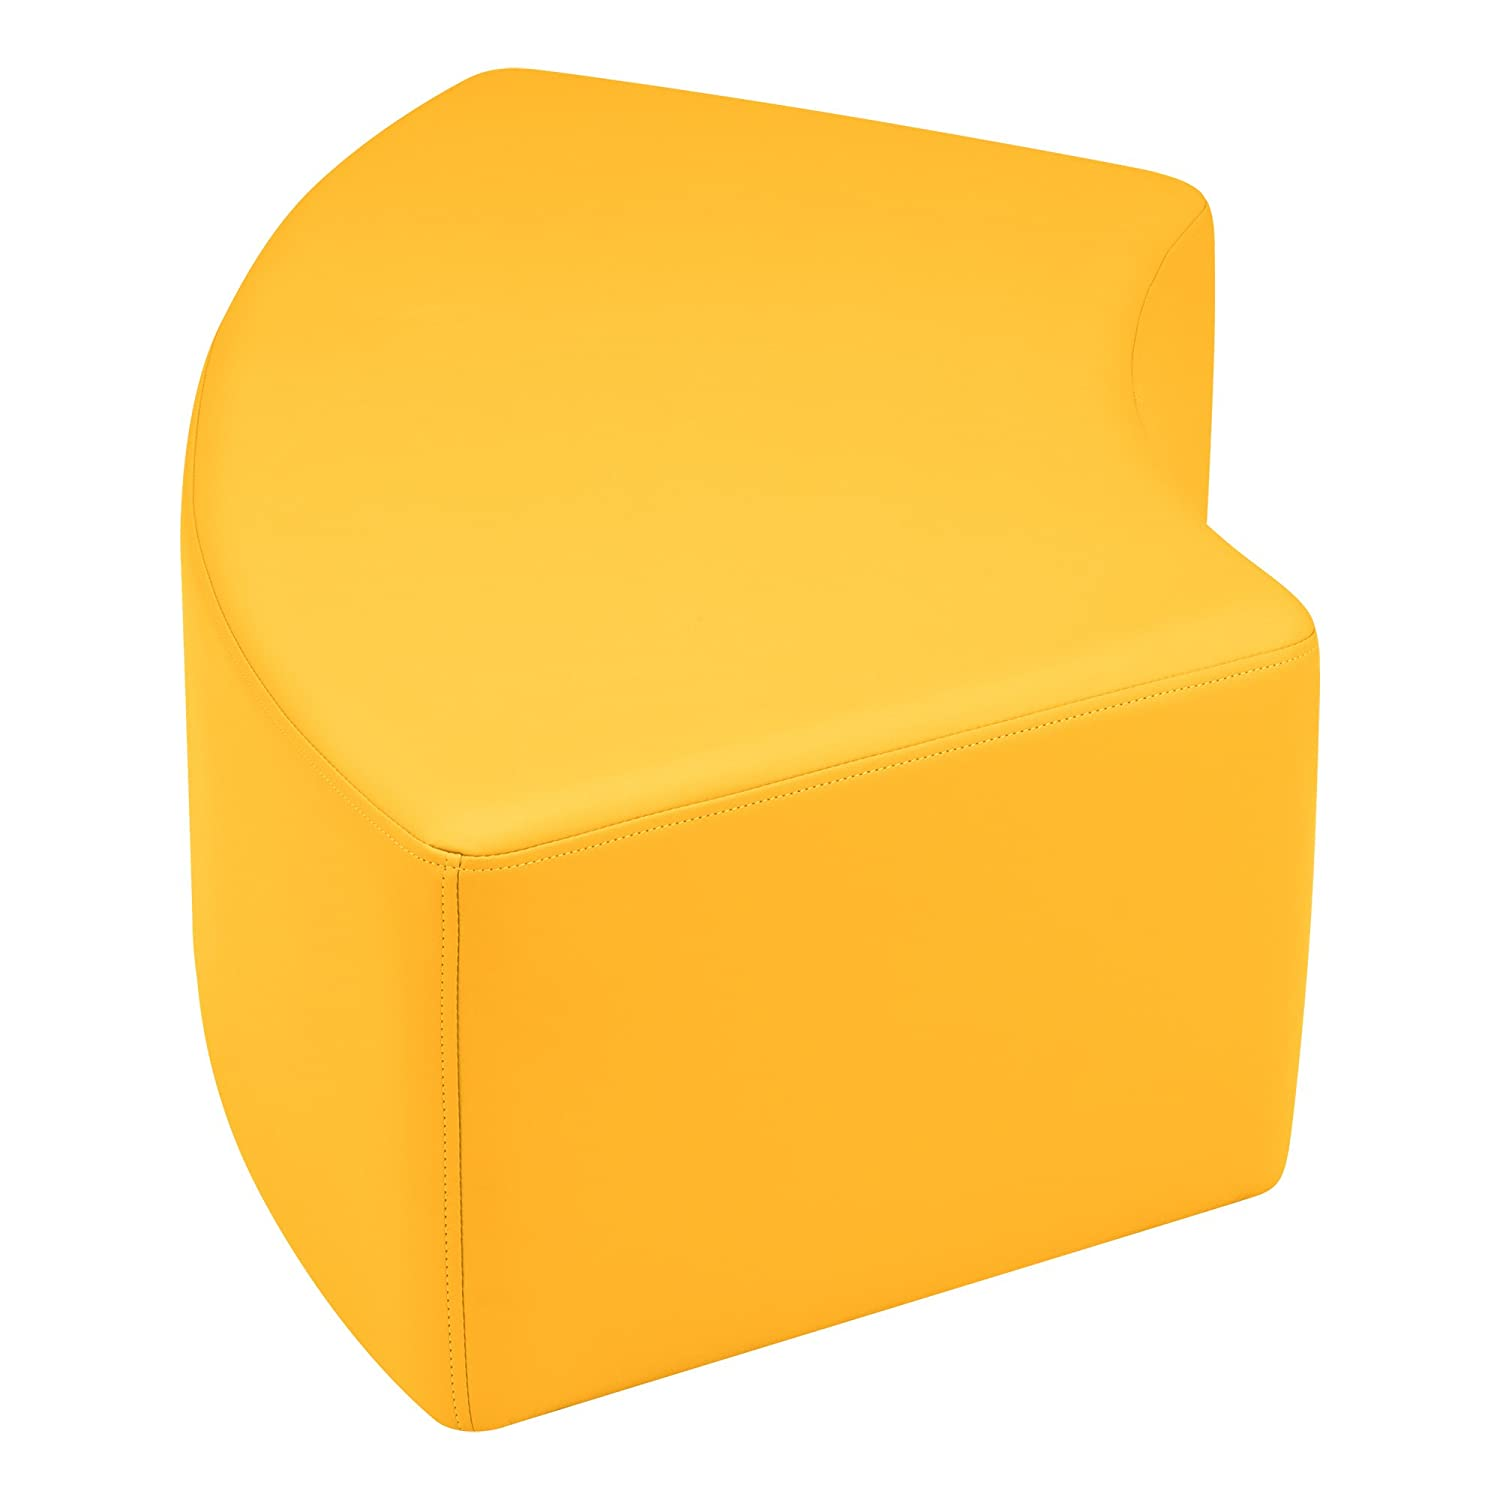 Sprogs Vinyl Soft Seating Curved Stool//Bench SPG-1019SD-A 12 H Sand